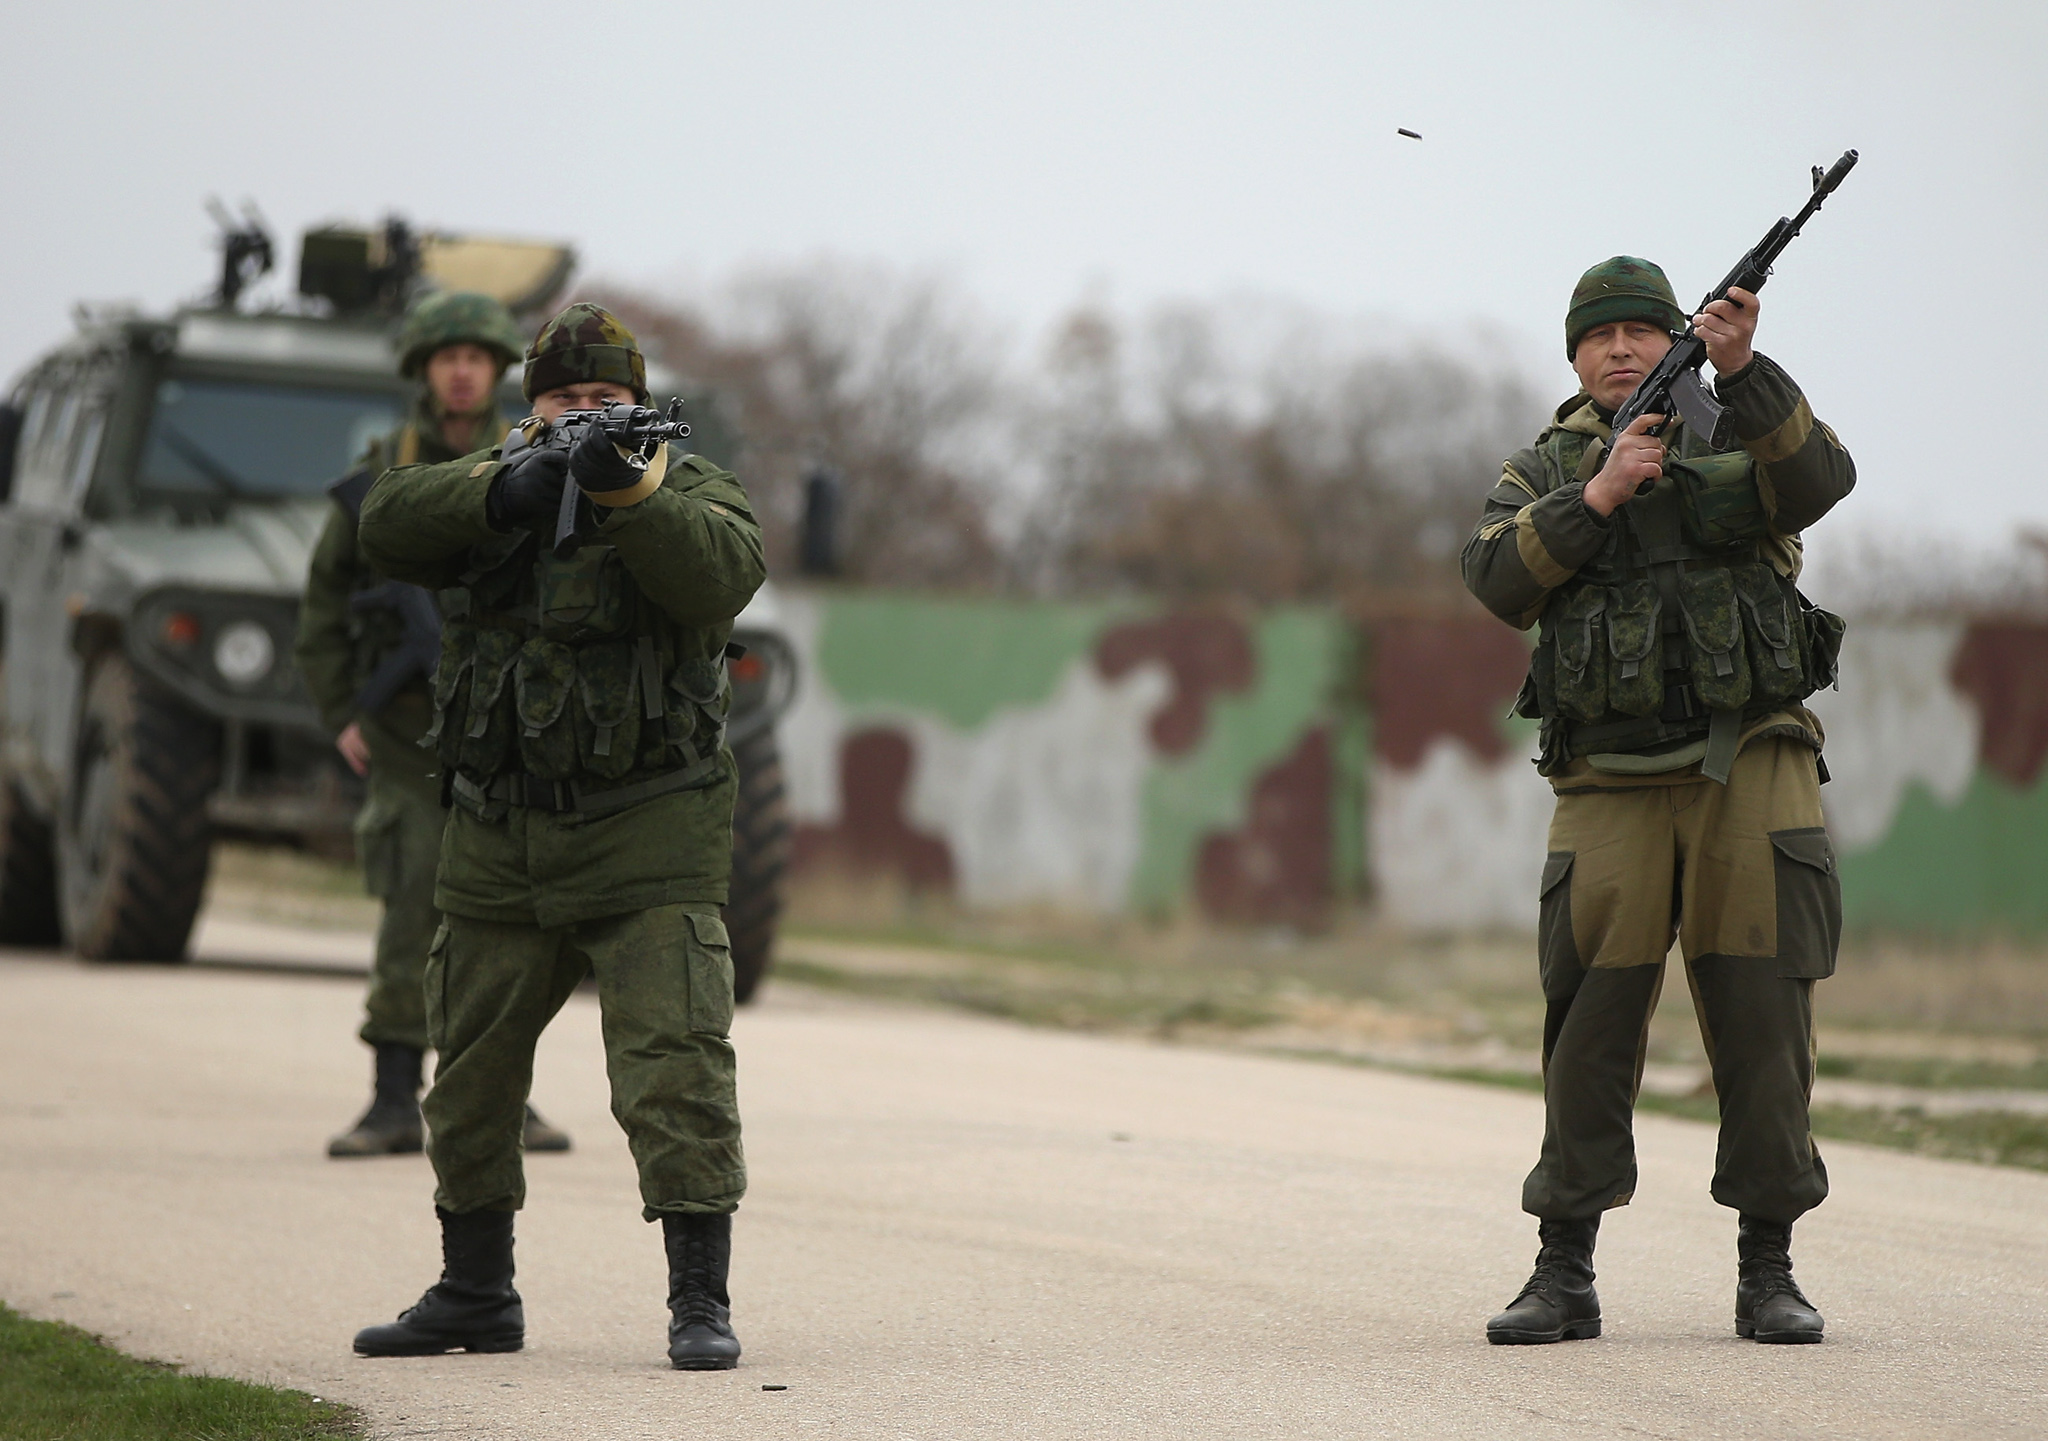 Troops under Russian command fire weapons into the air and scream orders to turn back at an approaching group of over 100 hundred unarmed Ukrainian troops at the Belbek airbase, which the Russian troops are occcupying, in Crimea, Ukraine. The Ukrainians are stationed at their garrison nearby, and after spending a tense night anticipating a Russian attack following the expiration of a Russian deadline to surrender, their commander Colonel Yuli Mamchor announced his bold plan this morning to retake the airfield by confronting the Russian-lead soldiers unarmed. The Russian-lead troops fired their weapons into the air but then granted Mamchor the beginning of negotiations with their commander.